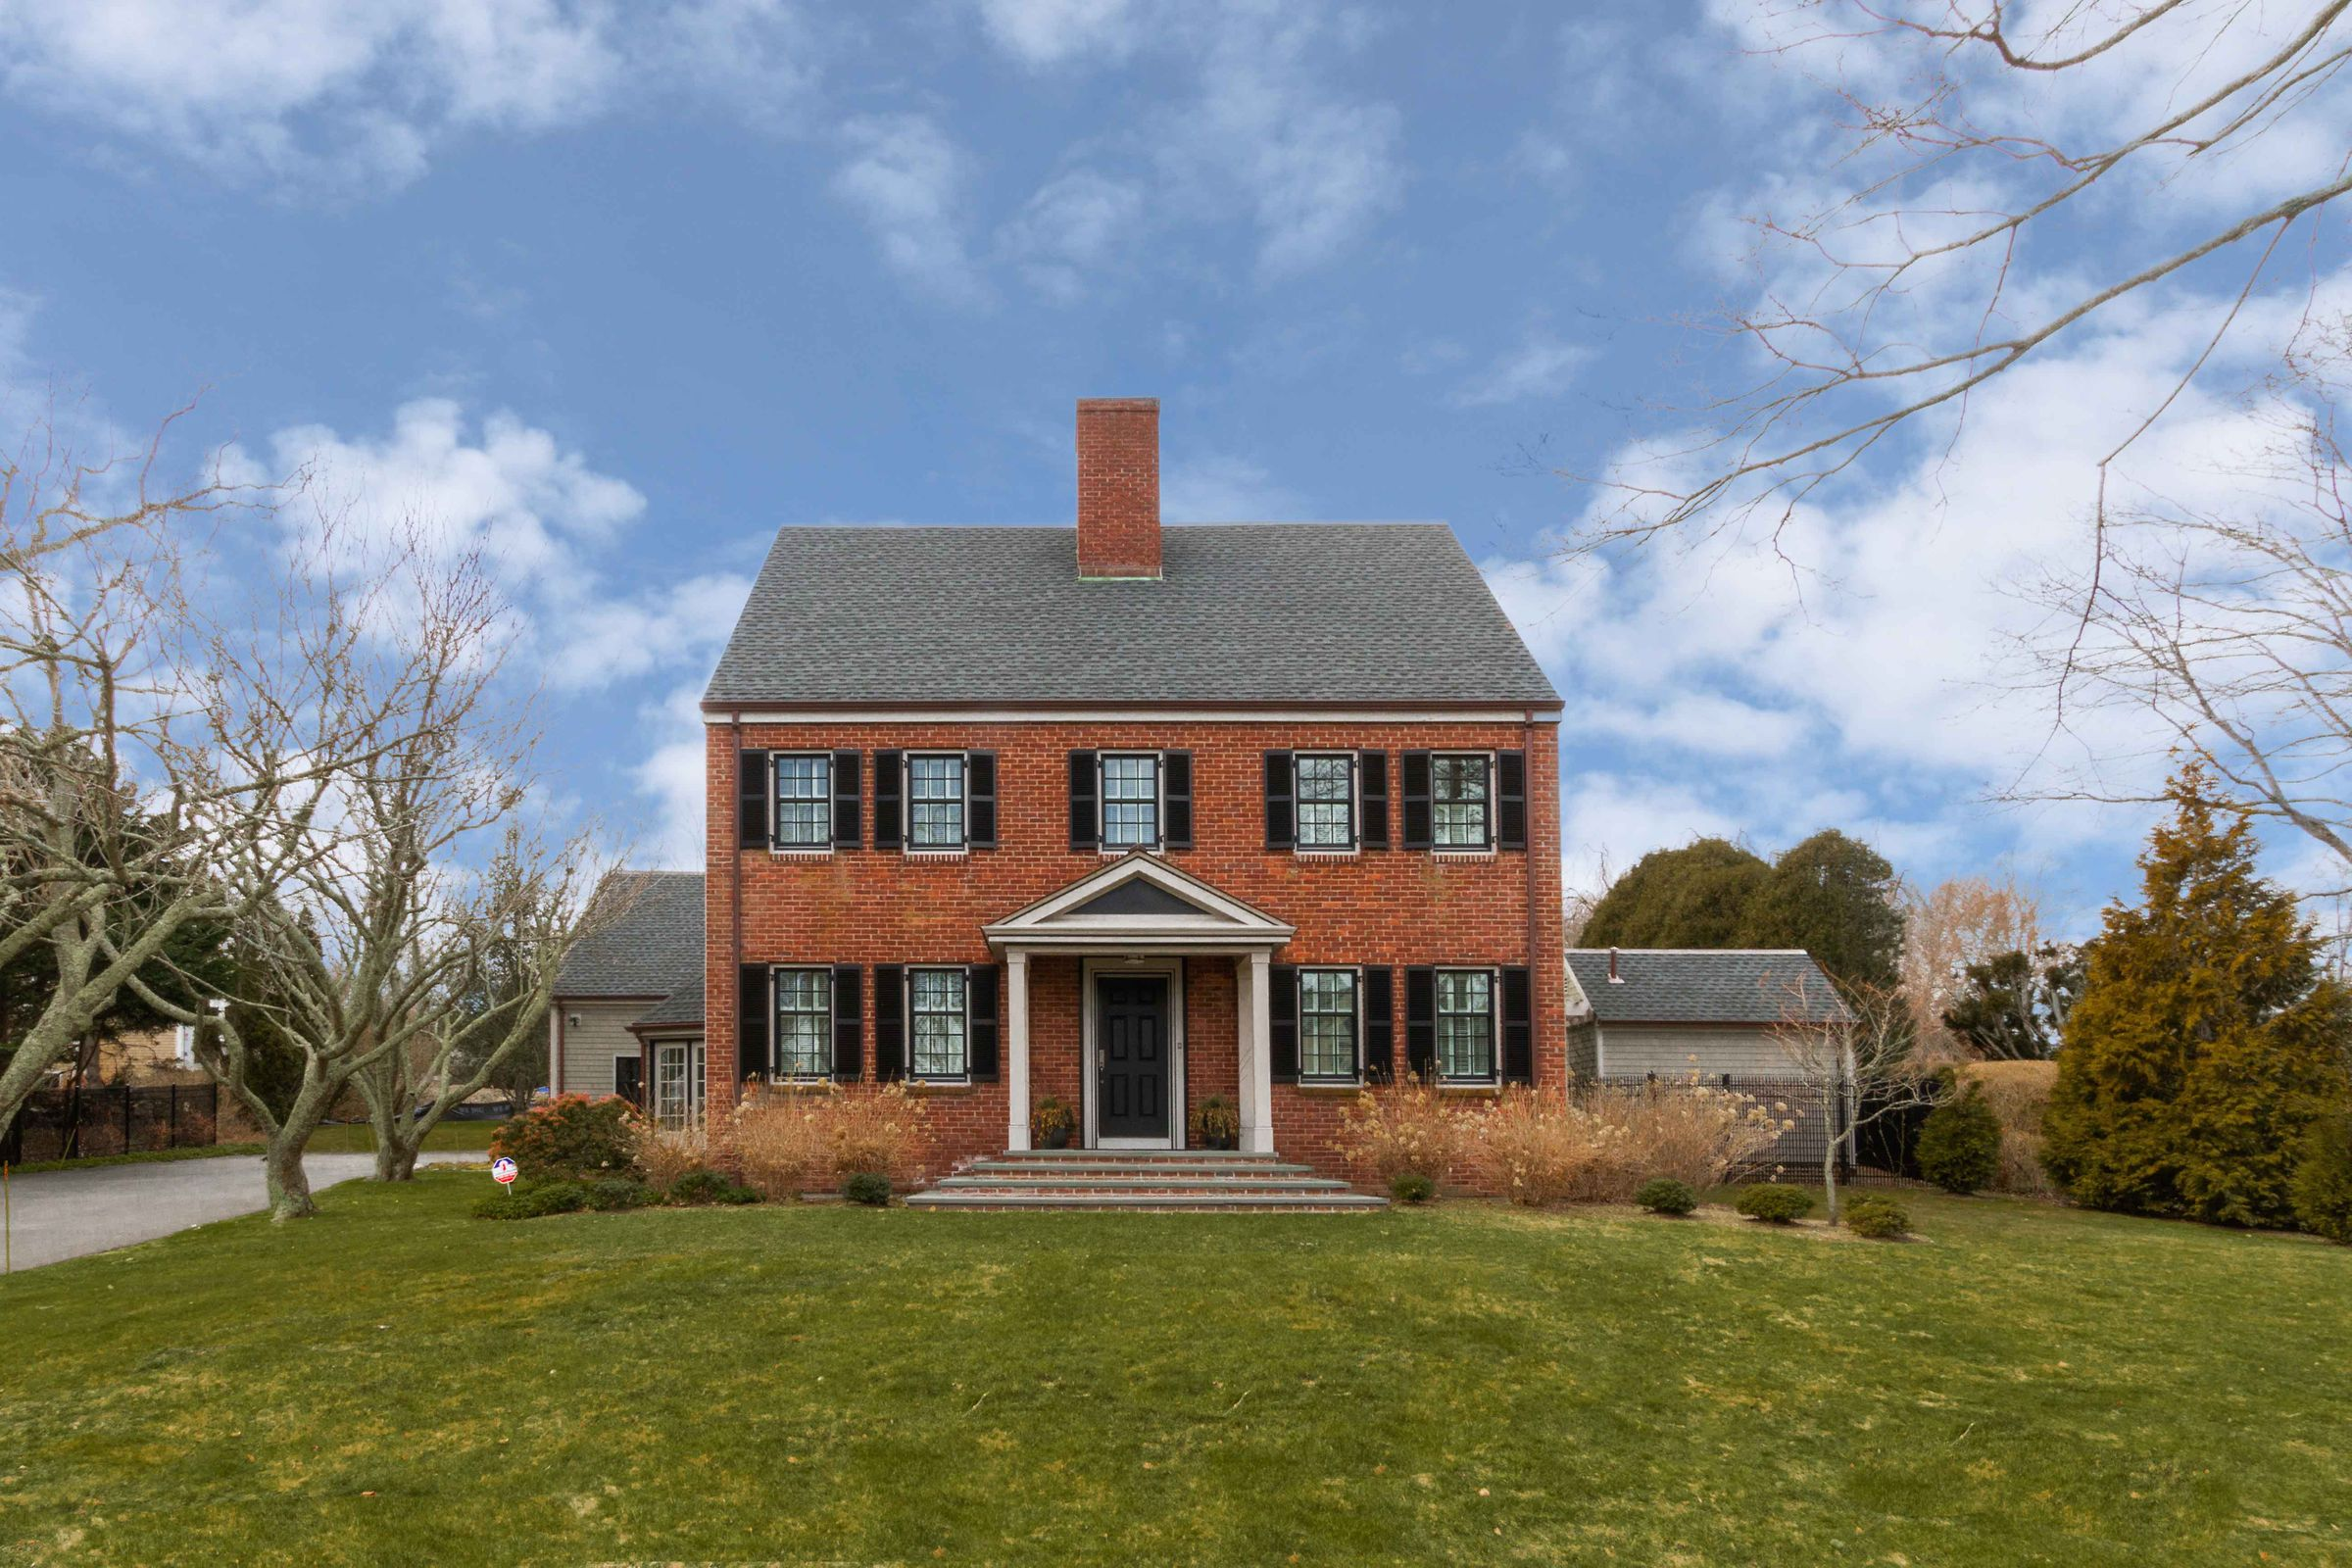 Four Newport area homes sell for more than $1 million